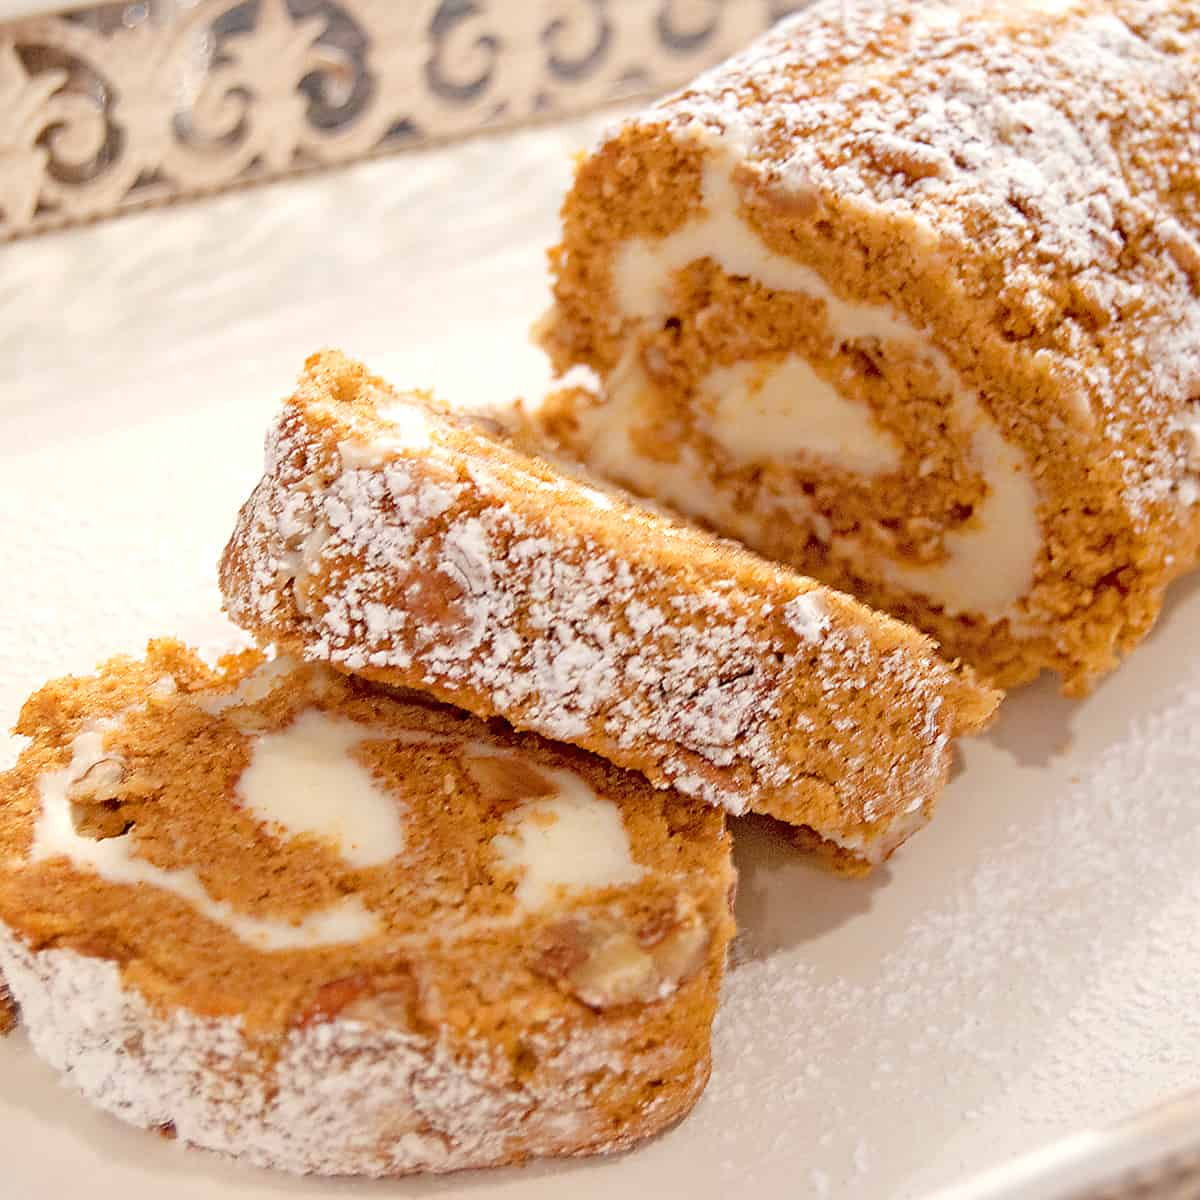 Slices of pumpkin roll on a serving tray.